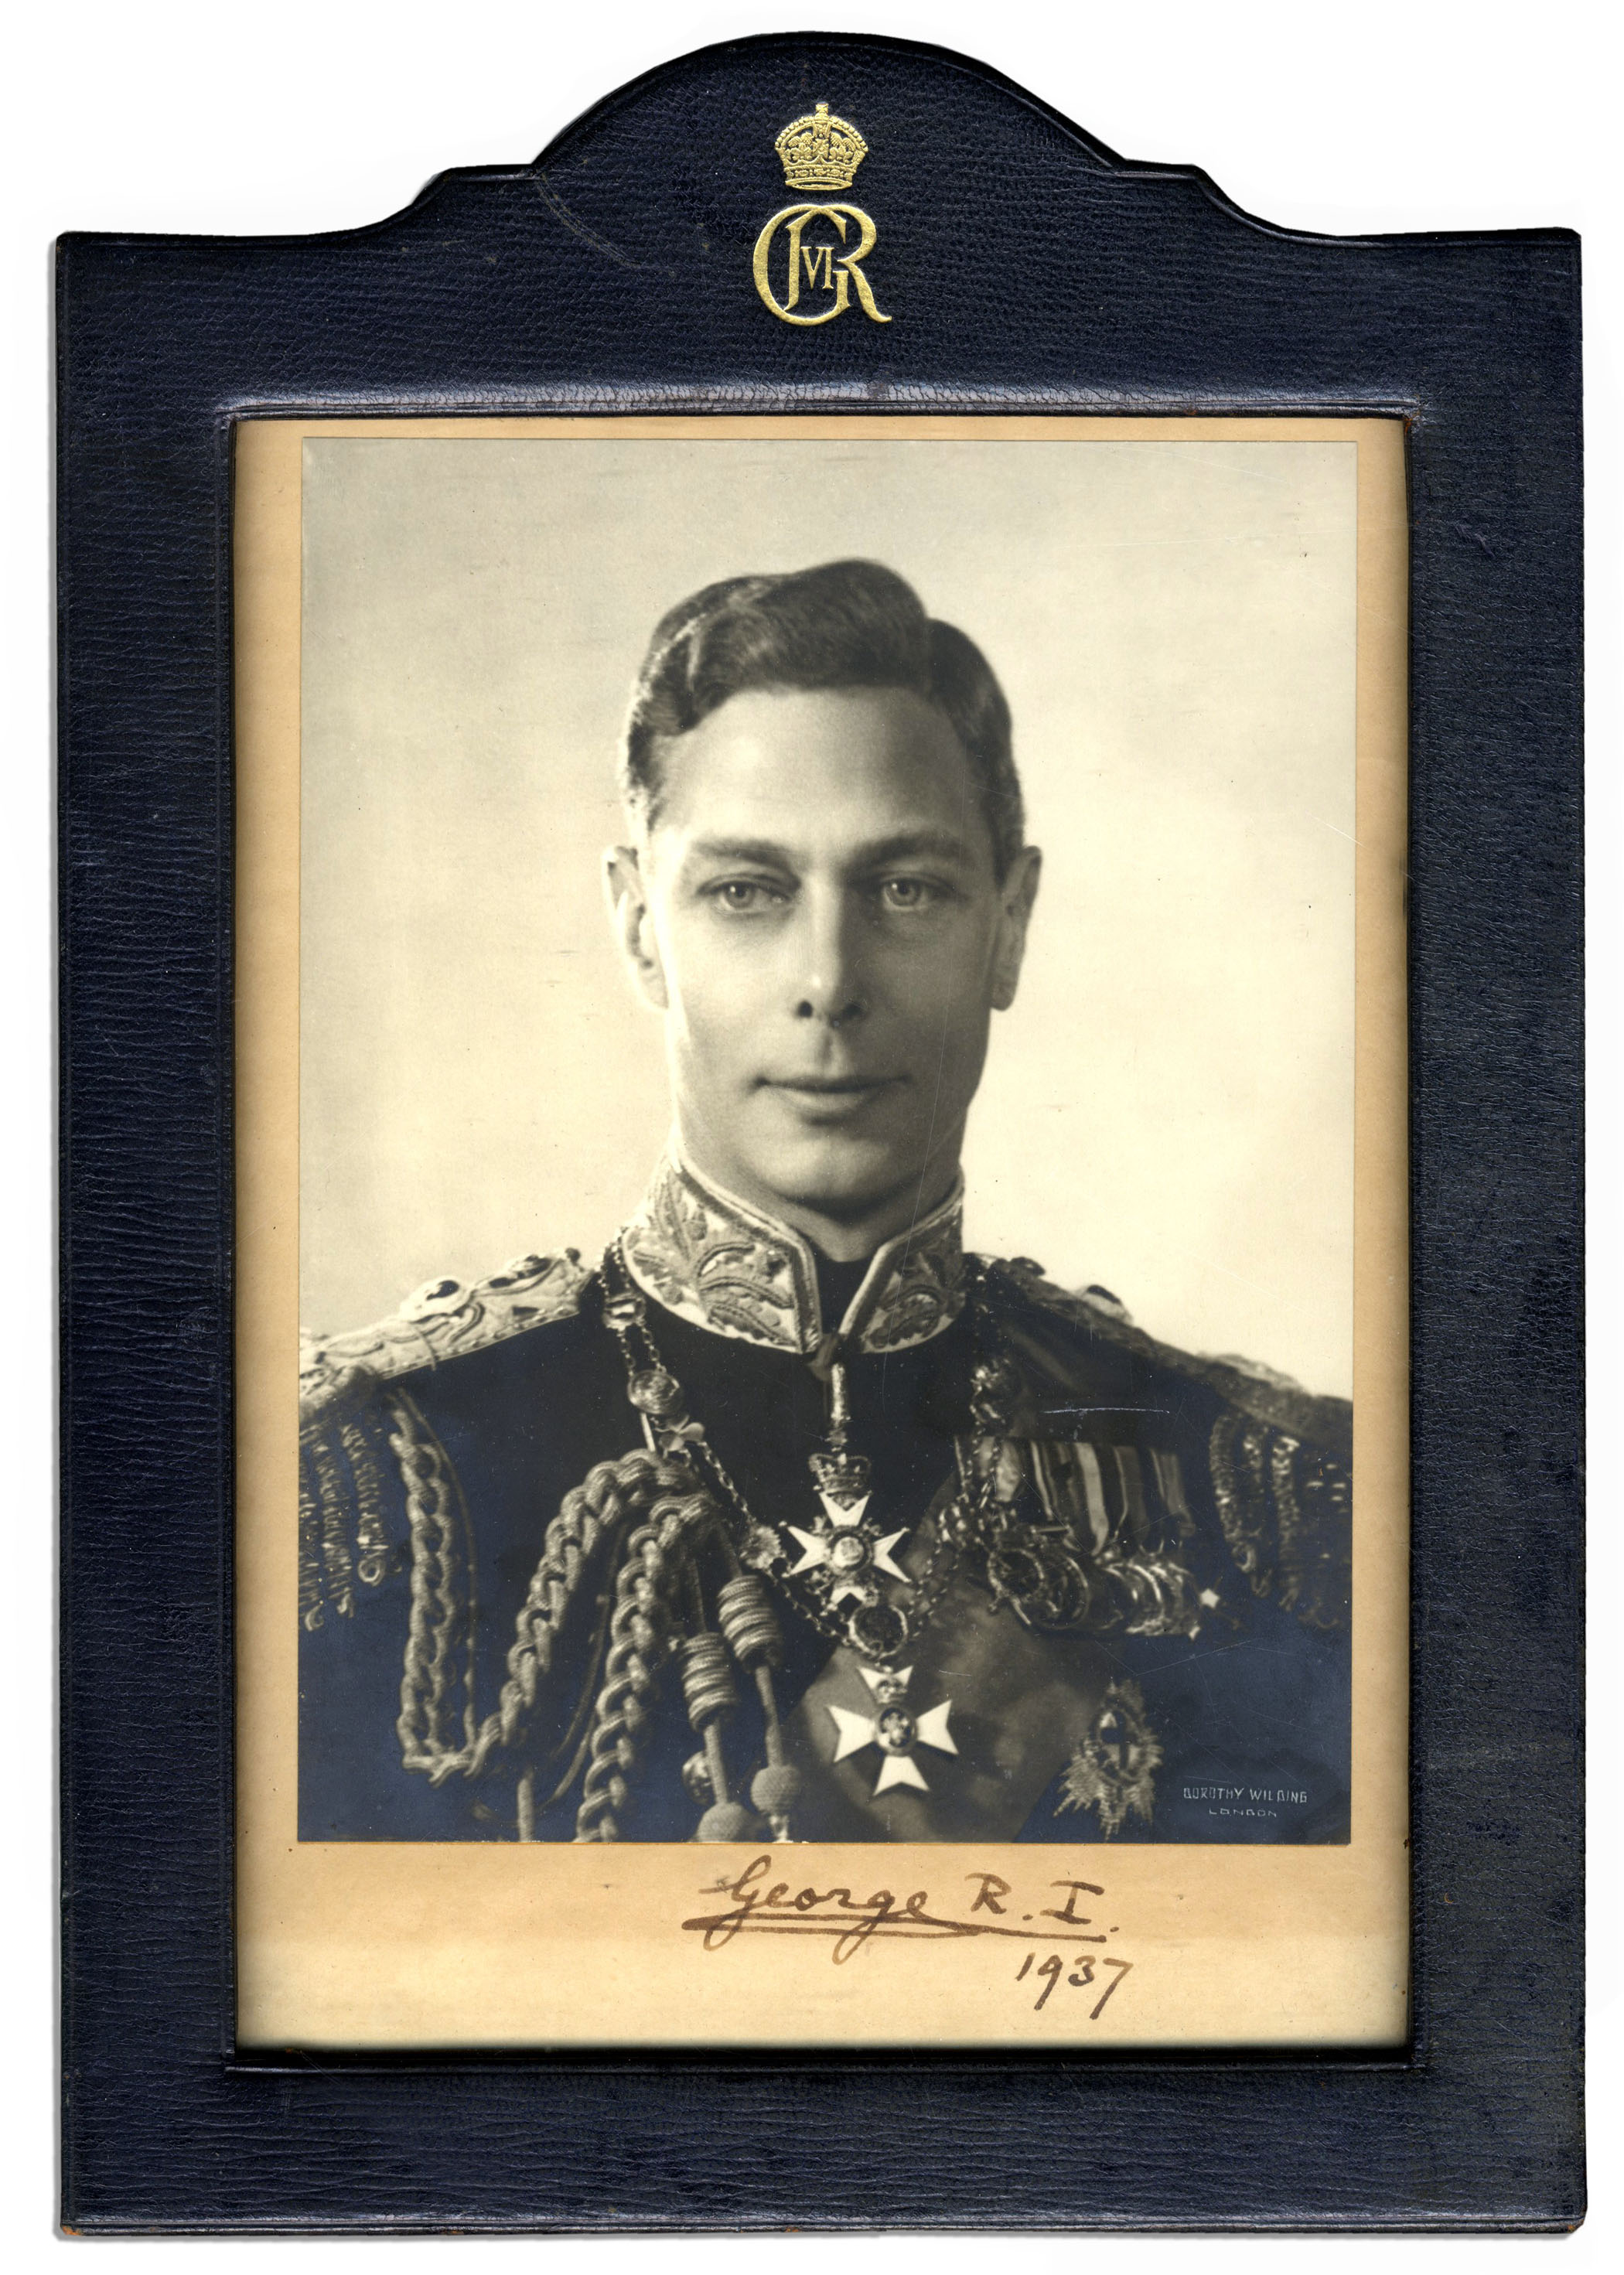 King George Memorabilia George VI Signed Photo in Royal Cypher Frame -- 1937 as King